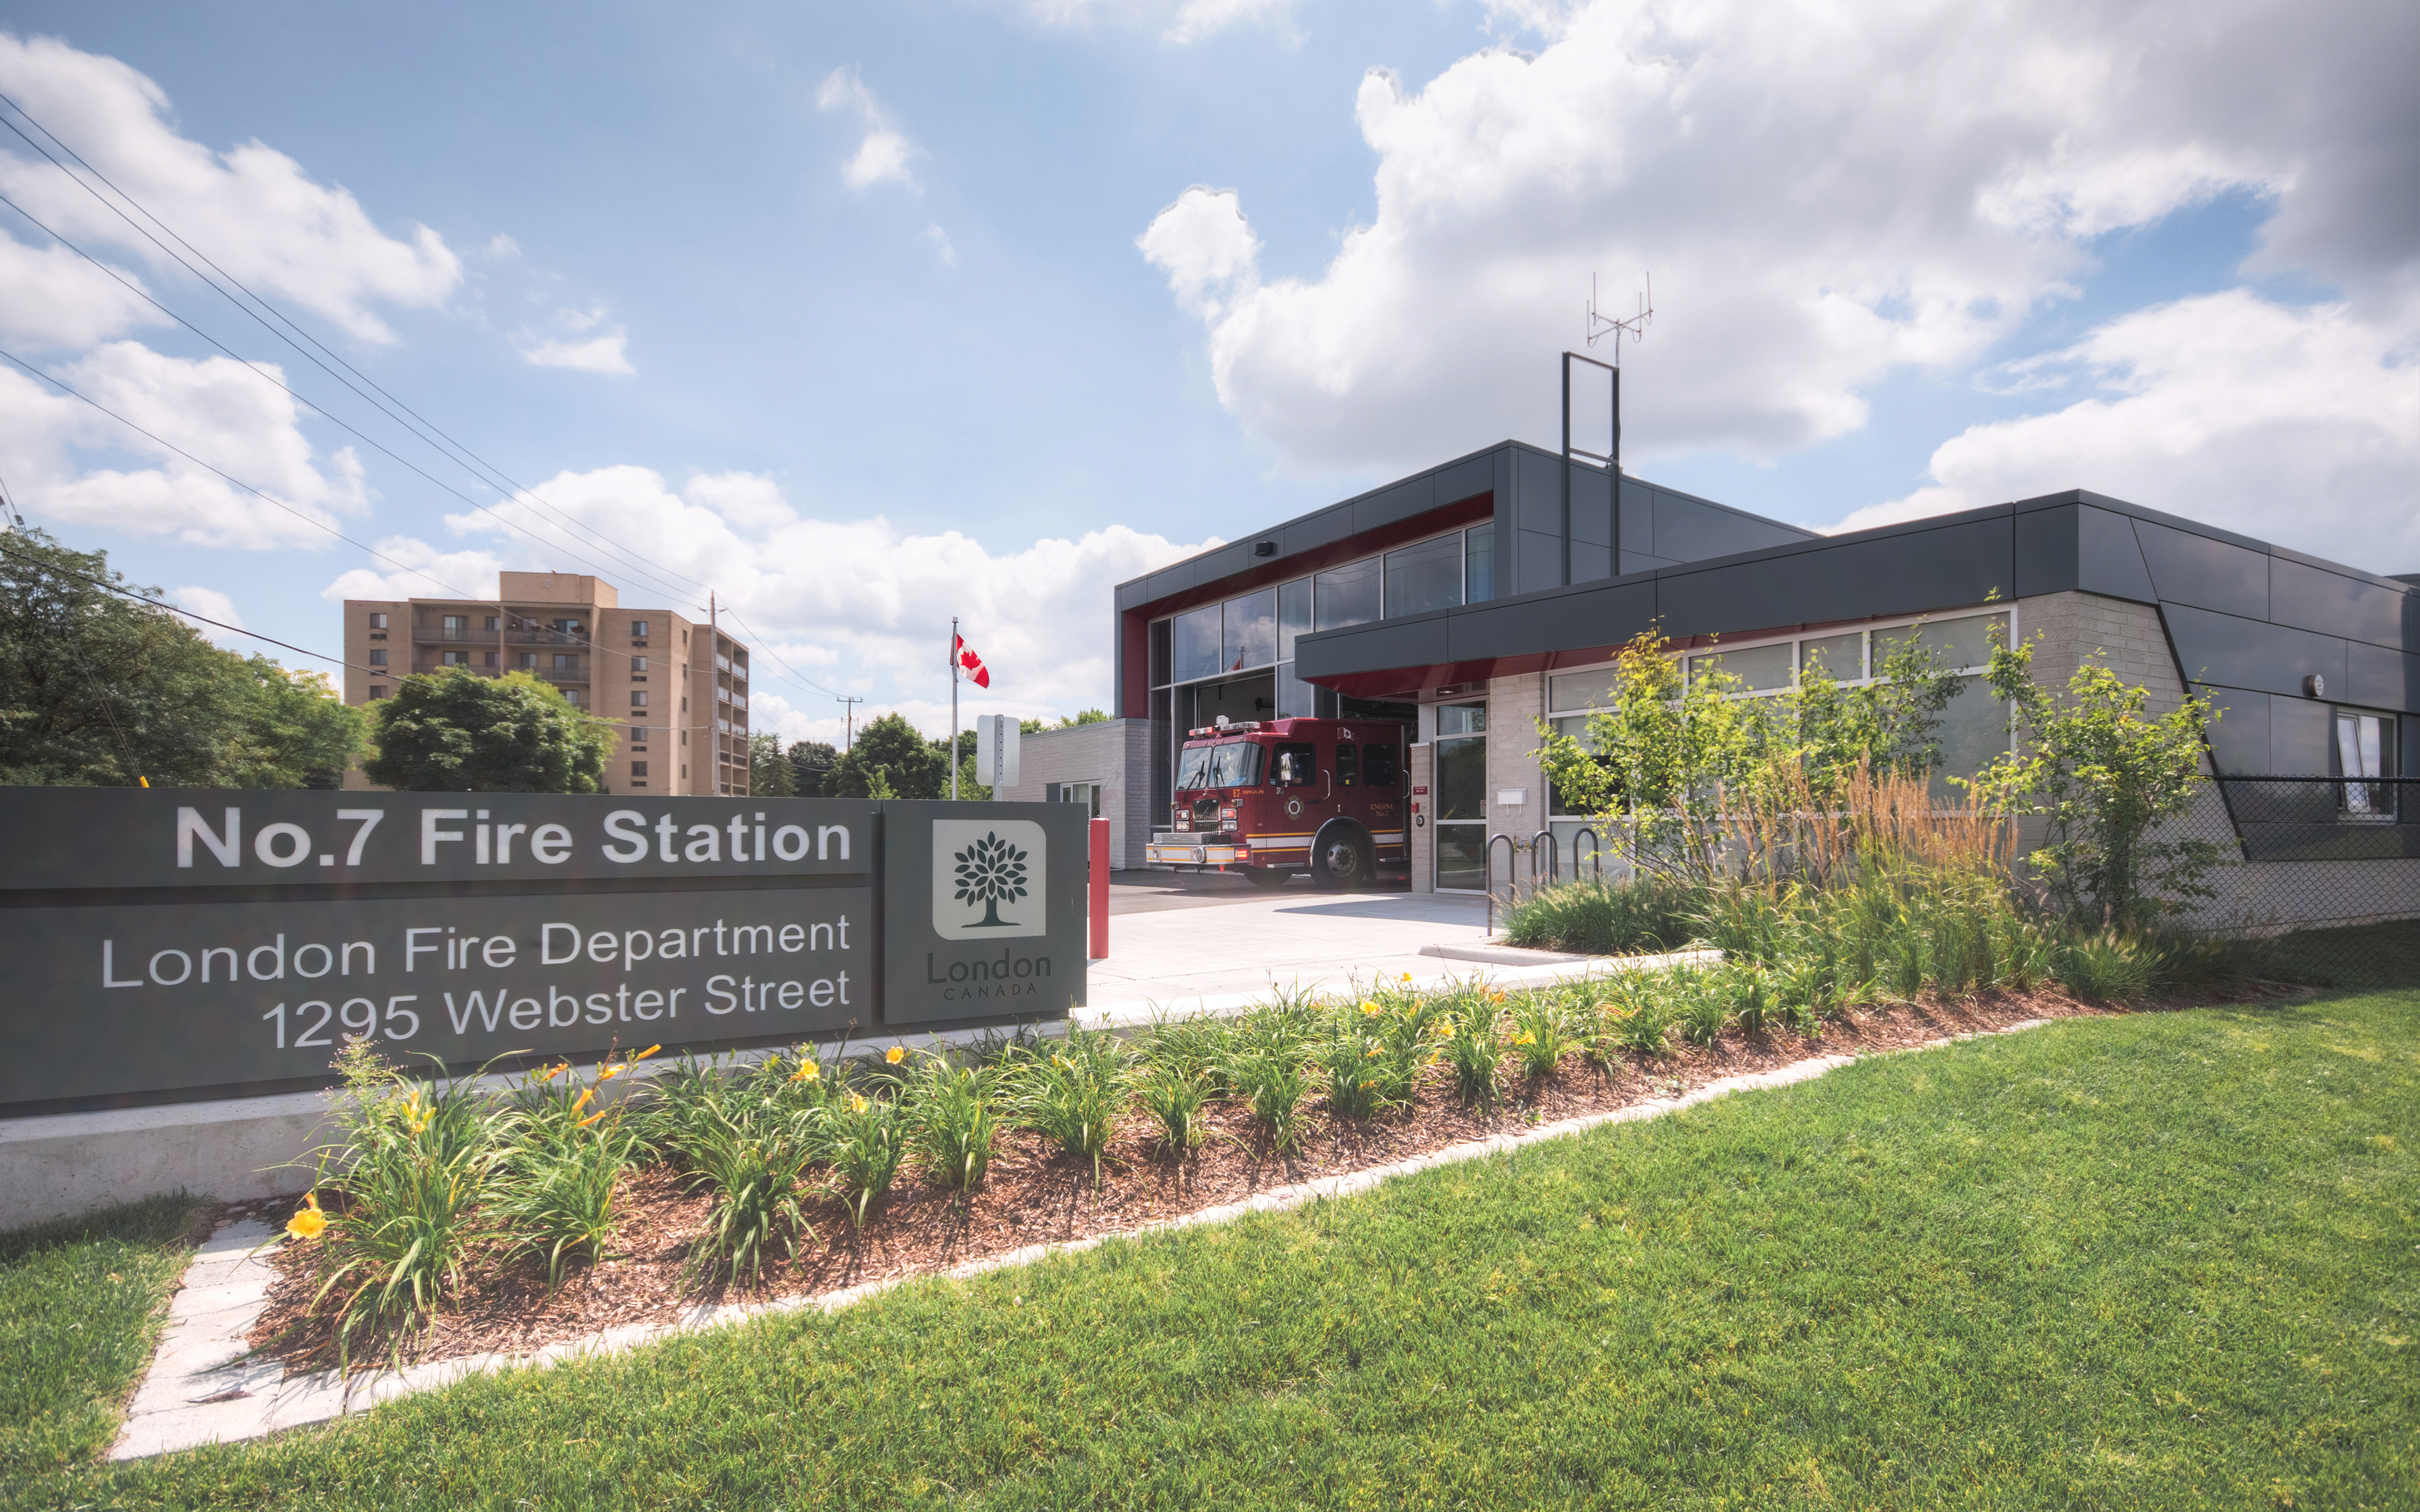 Architectural Photography by Scott Webb of Fire Station 7 in London Ontario Canada